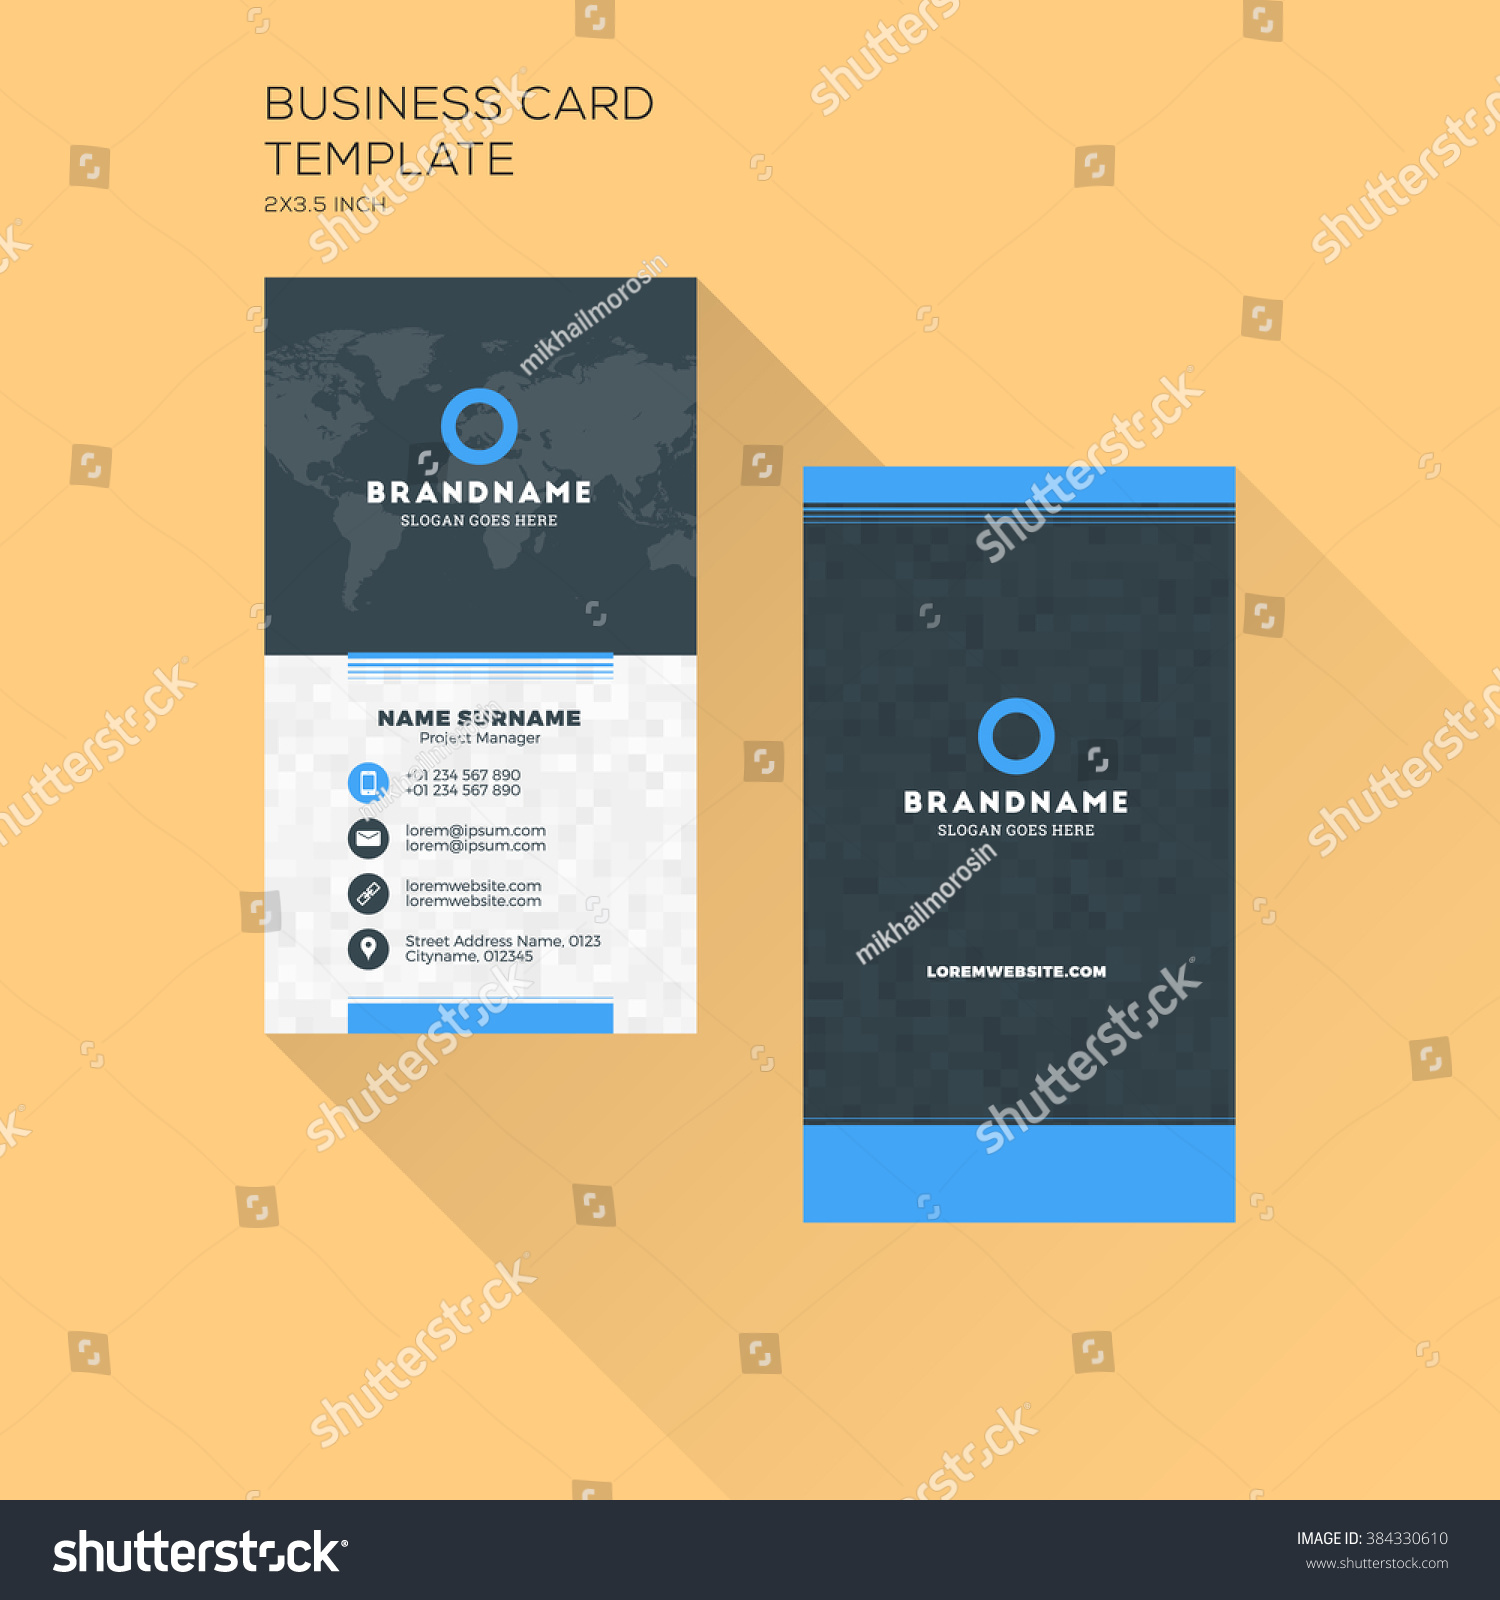 Vertical Business Card Print Template Personal Stock Vector - Vertical business card template